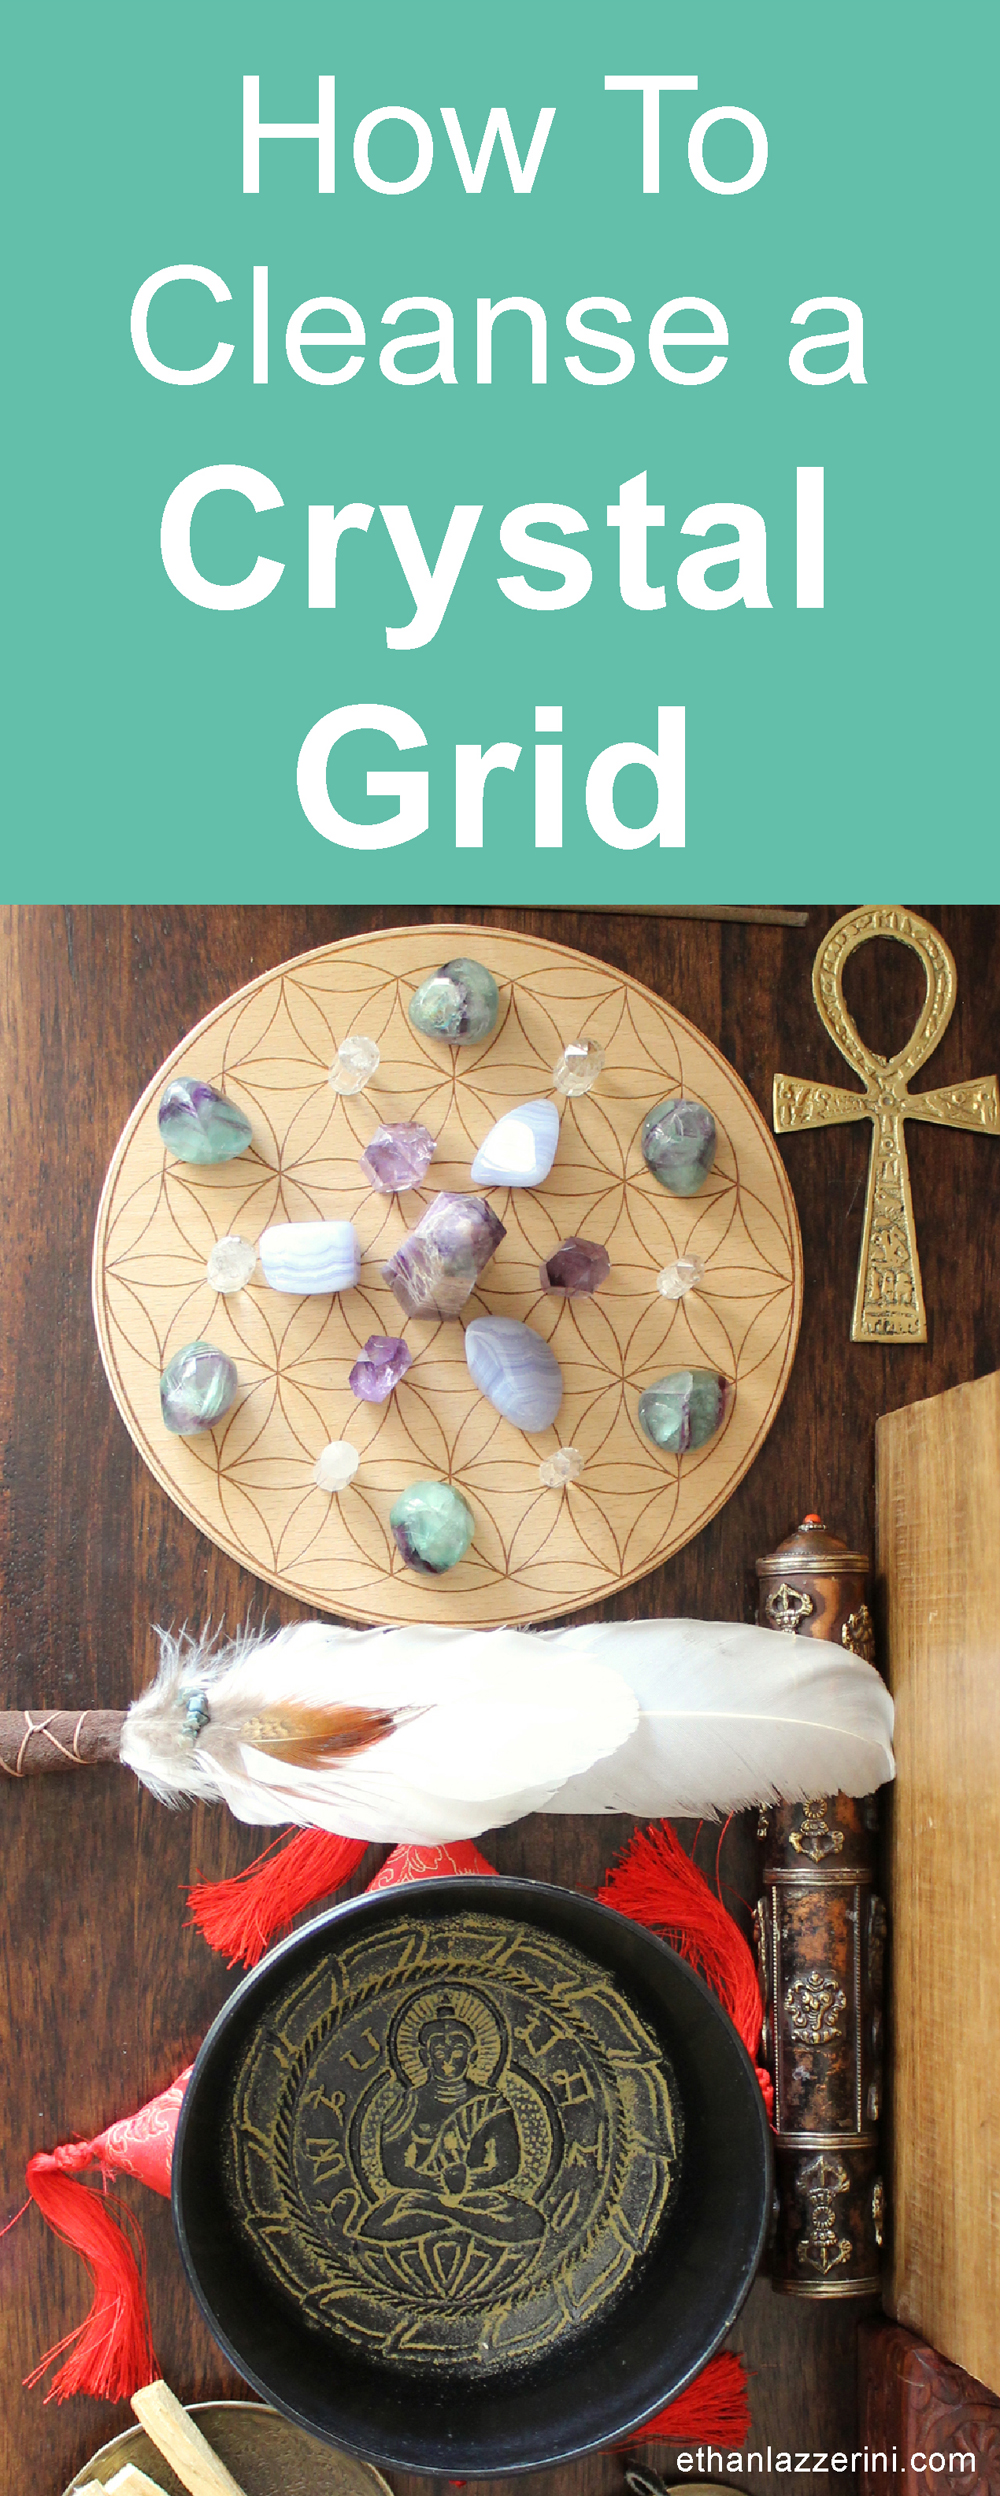 How to cleanse a crystal grid